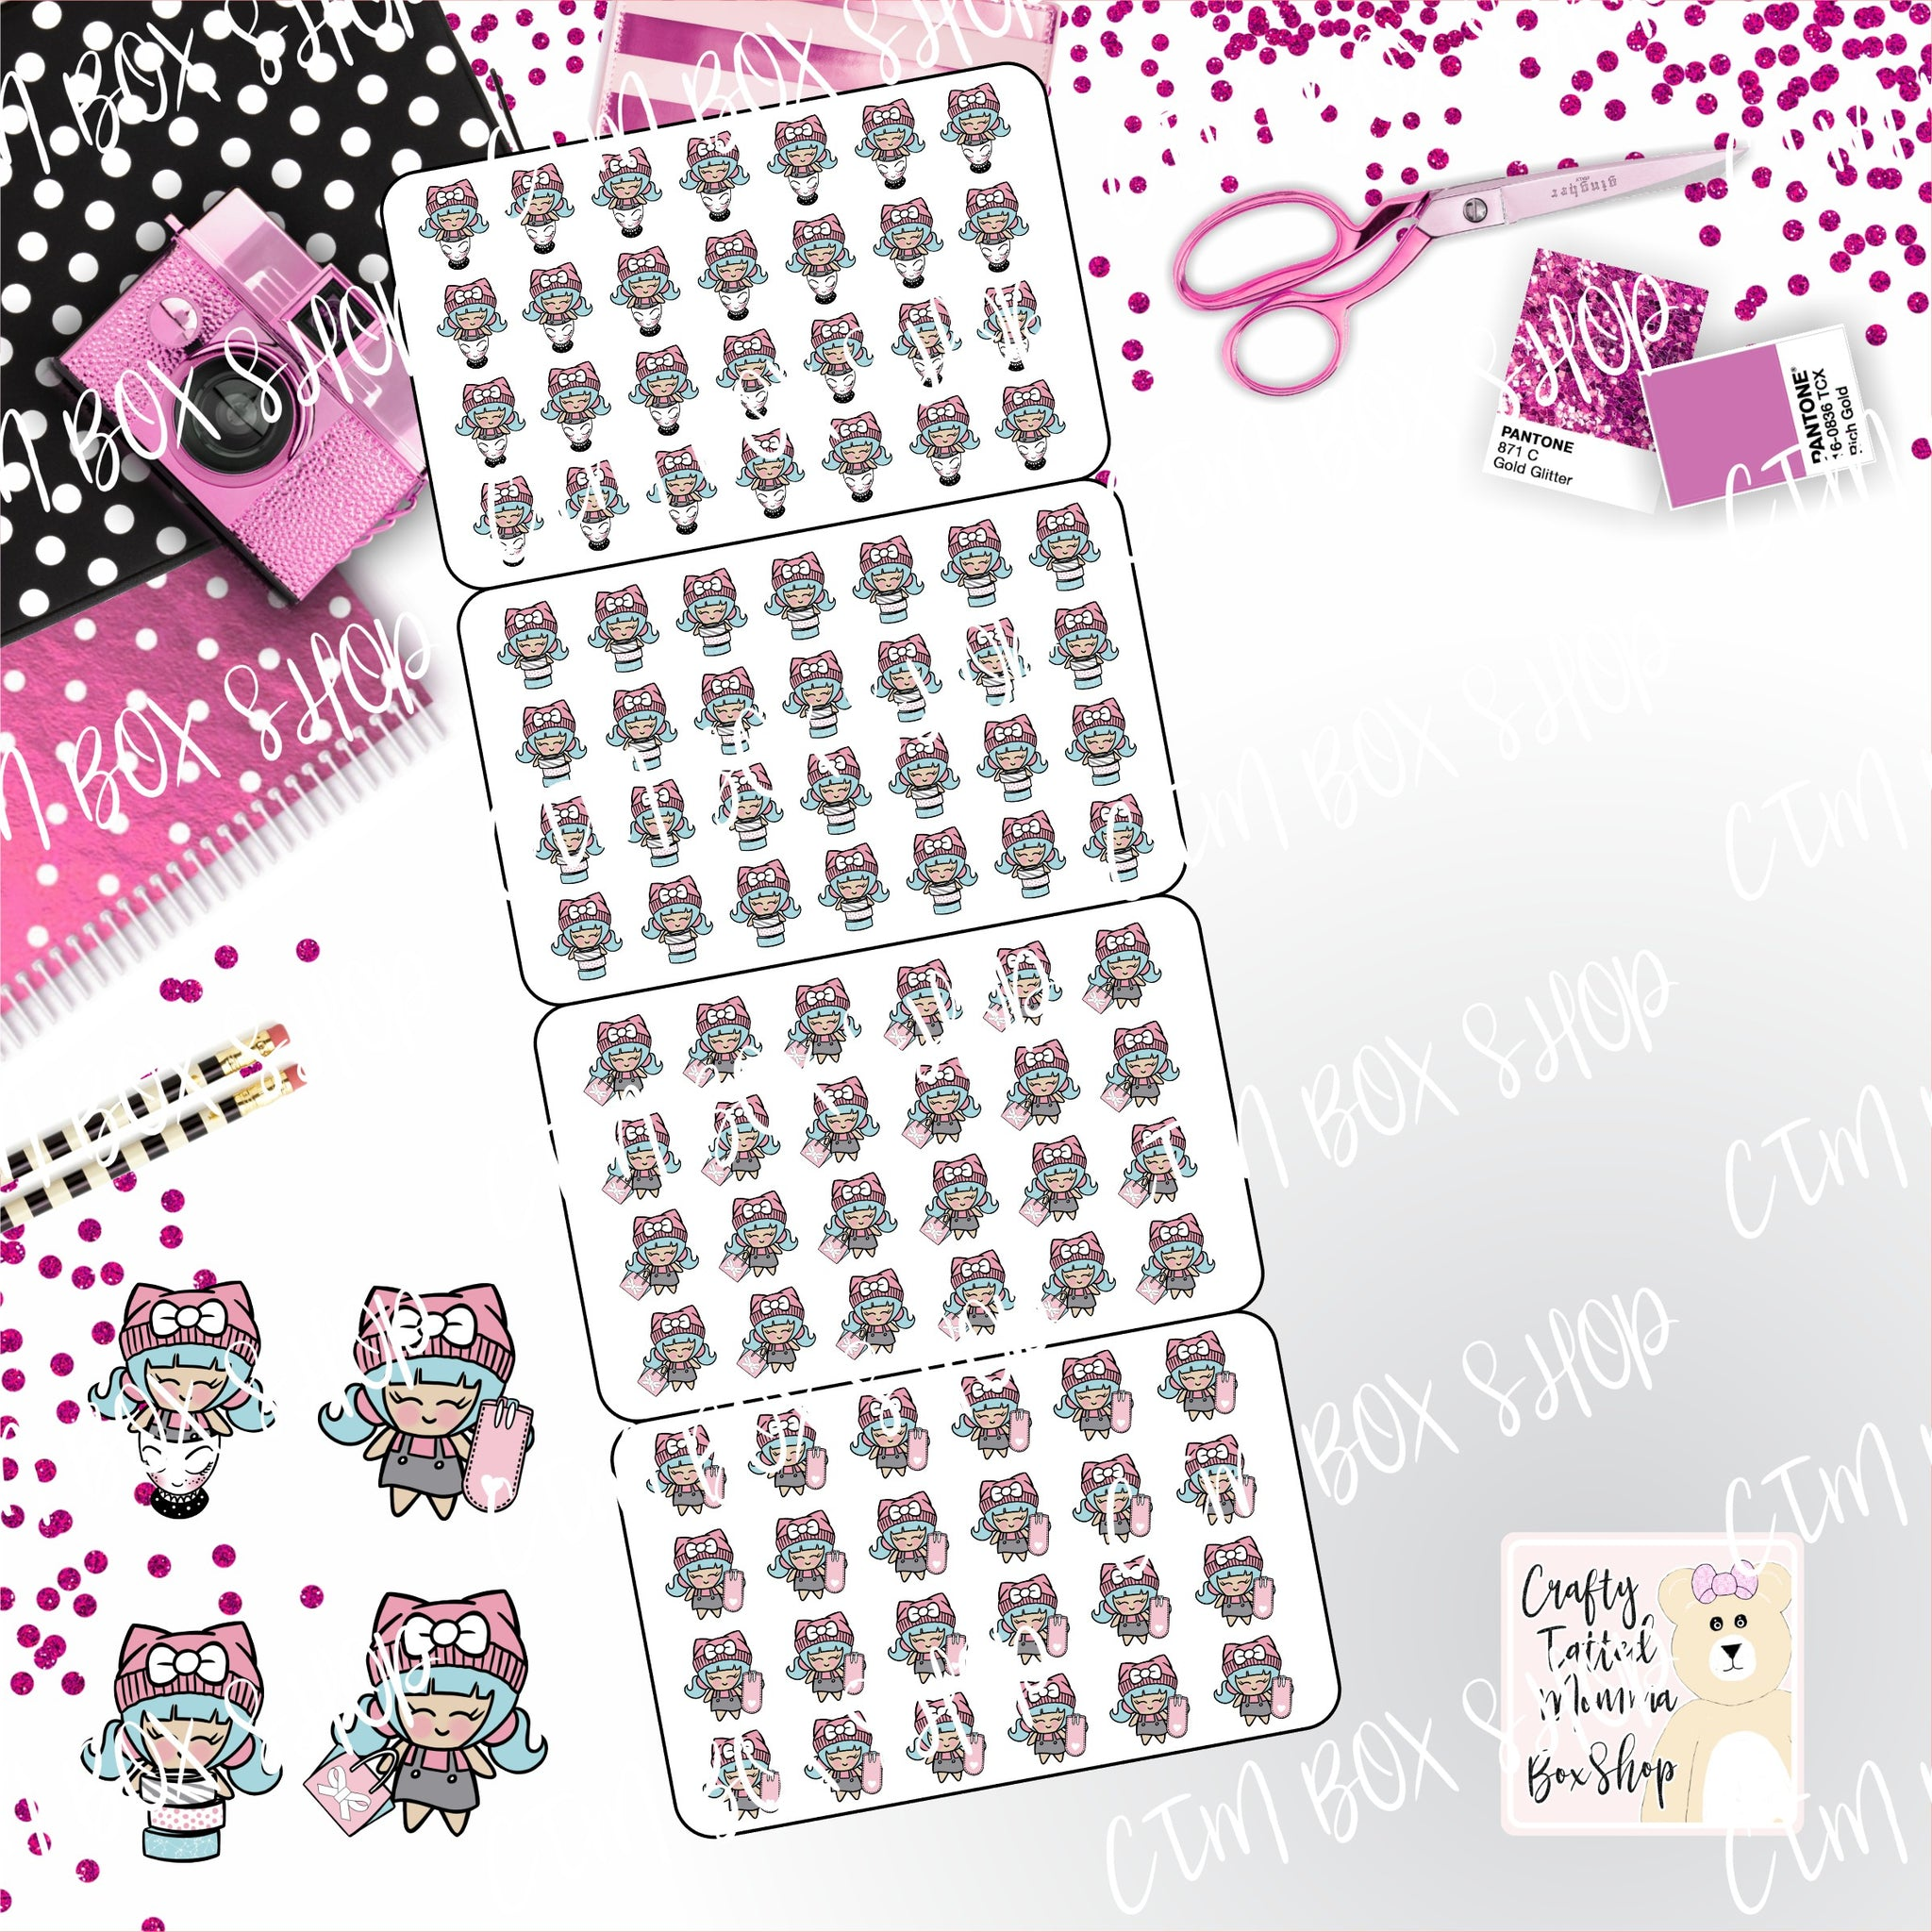 Planner Girl Fold up Stickers   Character Stickers   Planner Stickers   Functional Stickers   Folding Stickers   Deco Stickers